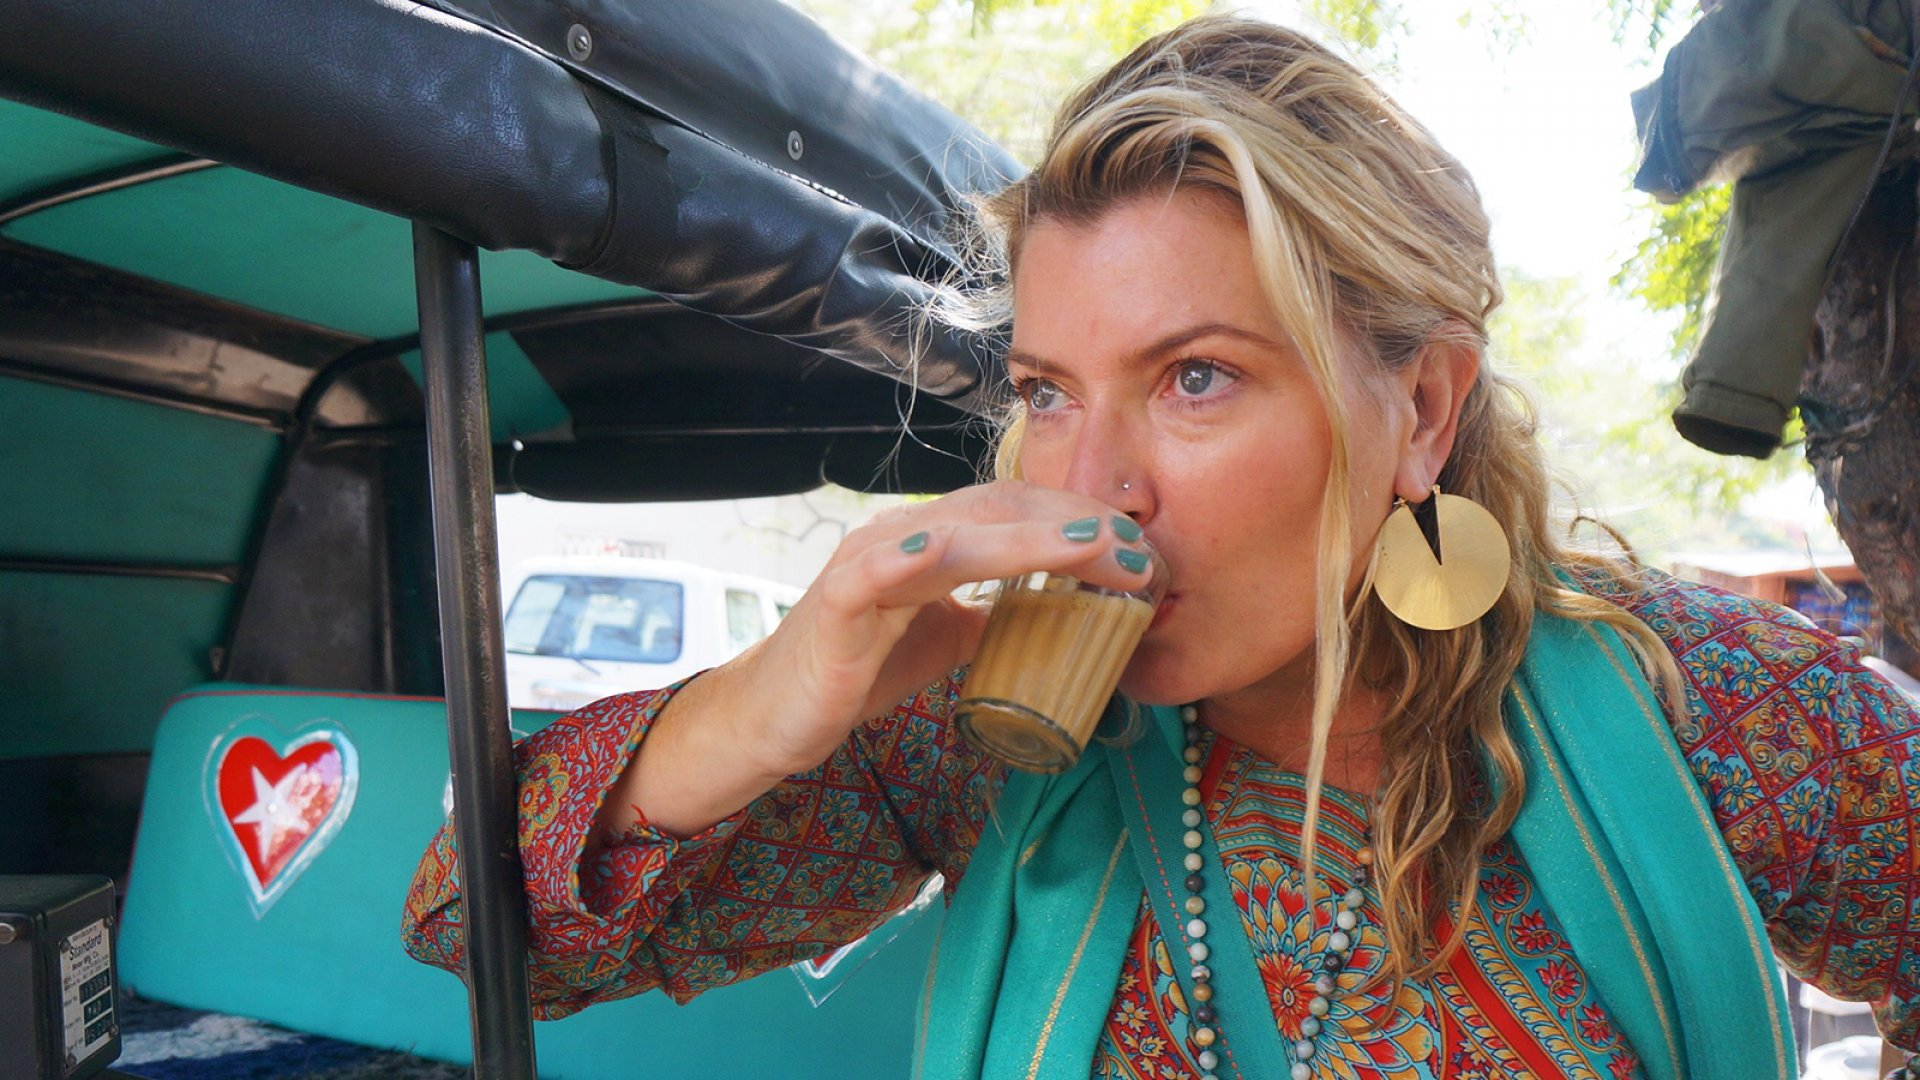 Bhakti Chai founder Brook Eddy tastes locally brewed chai tea in Jaipur, India.